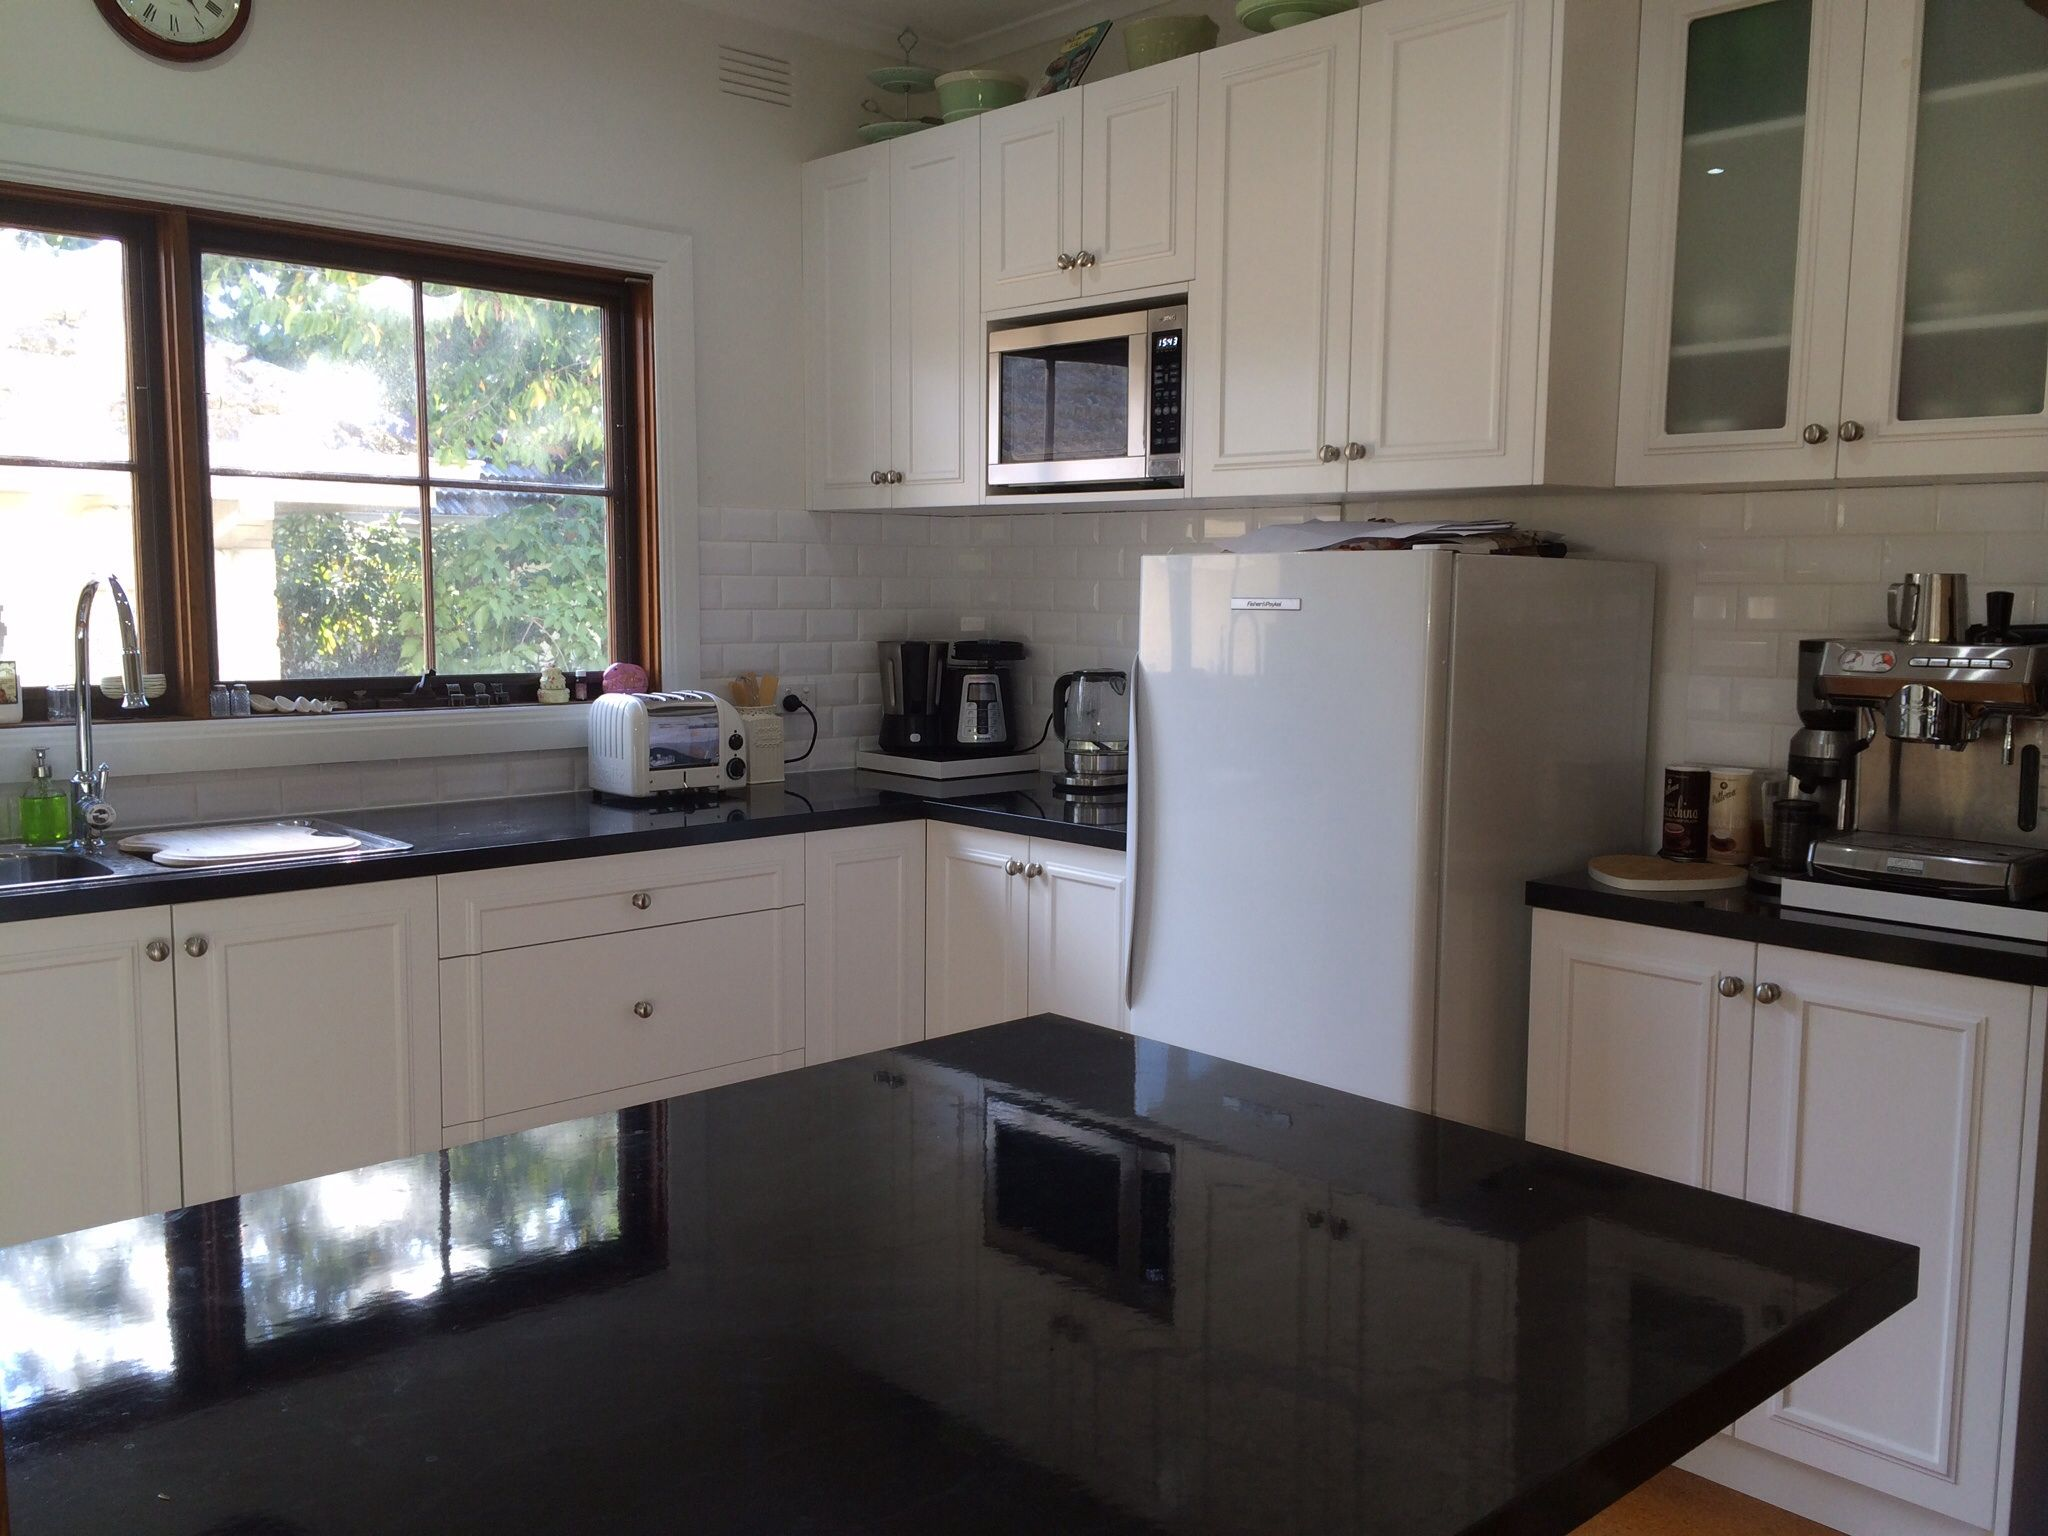 White Kitchen Black Benchtop finished result with white subway tile splash back, black benchtop